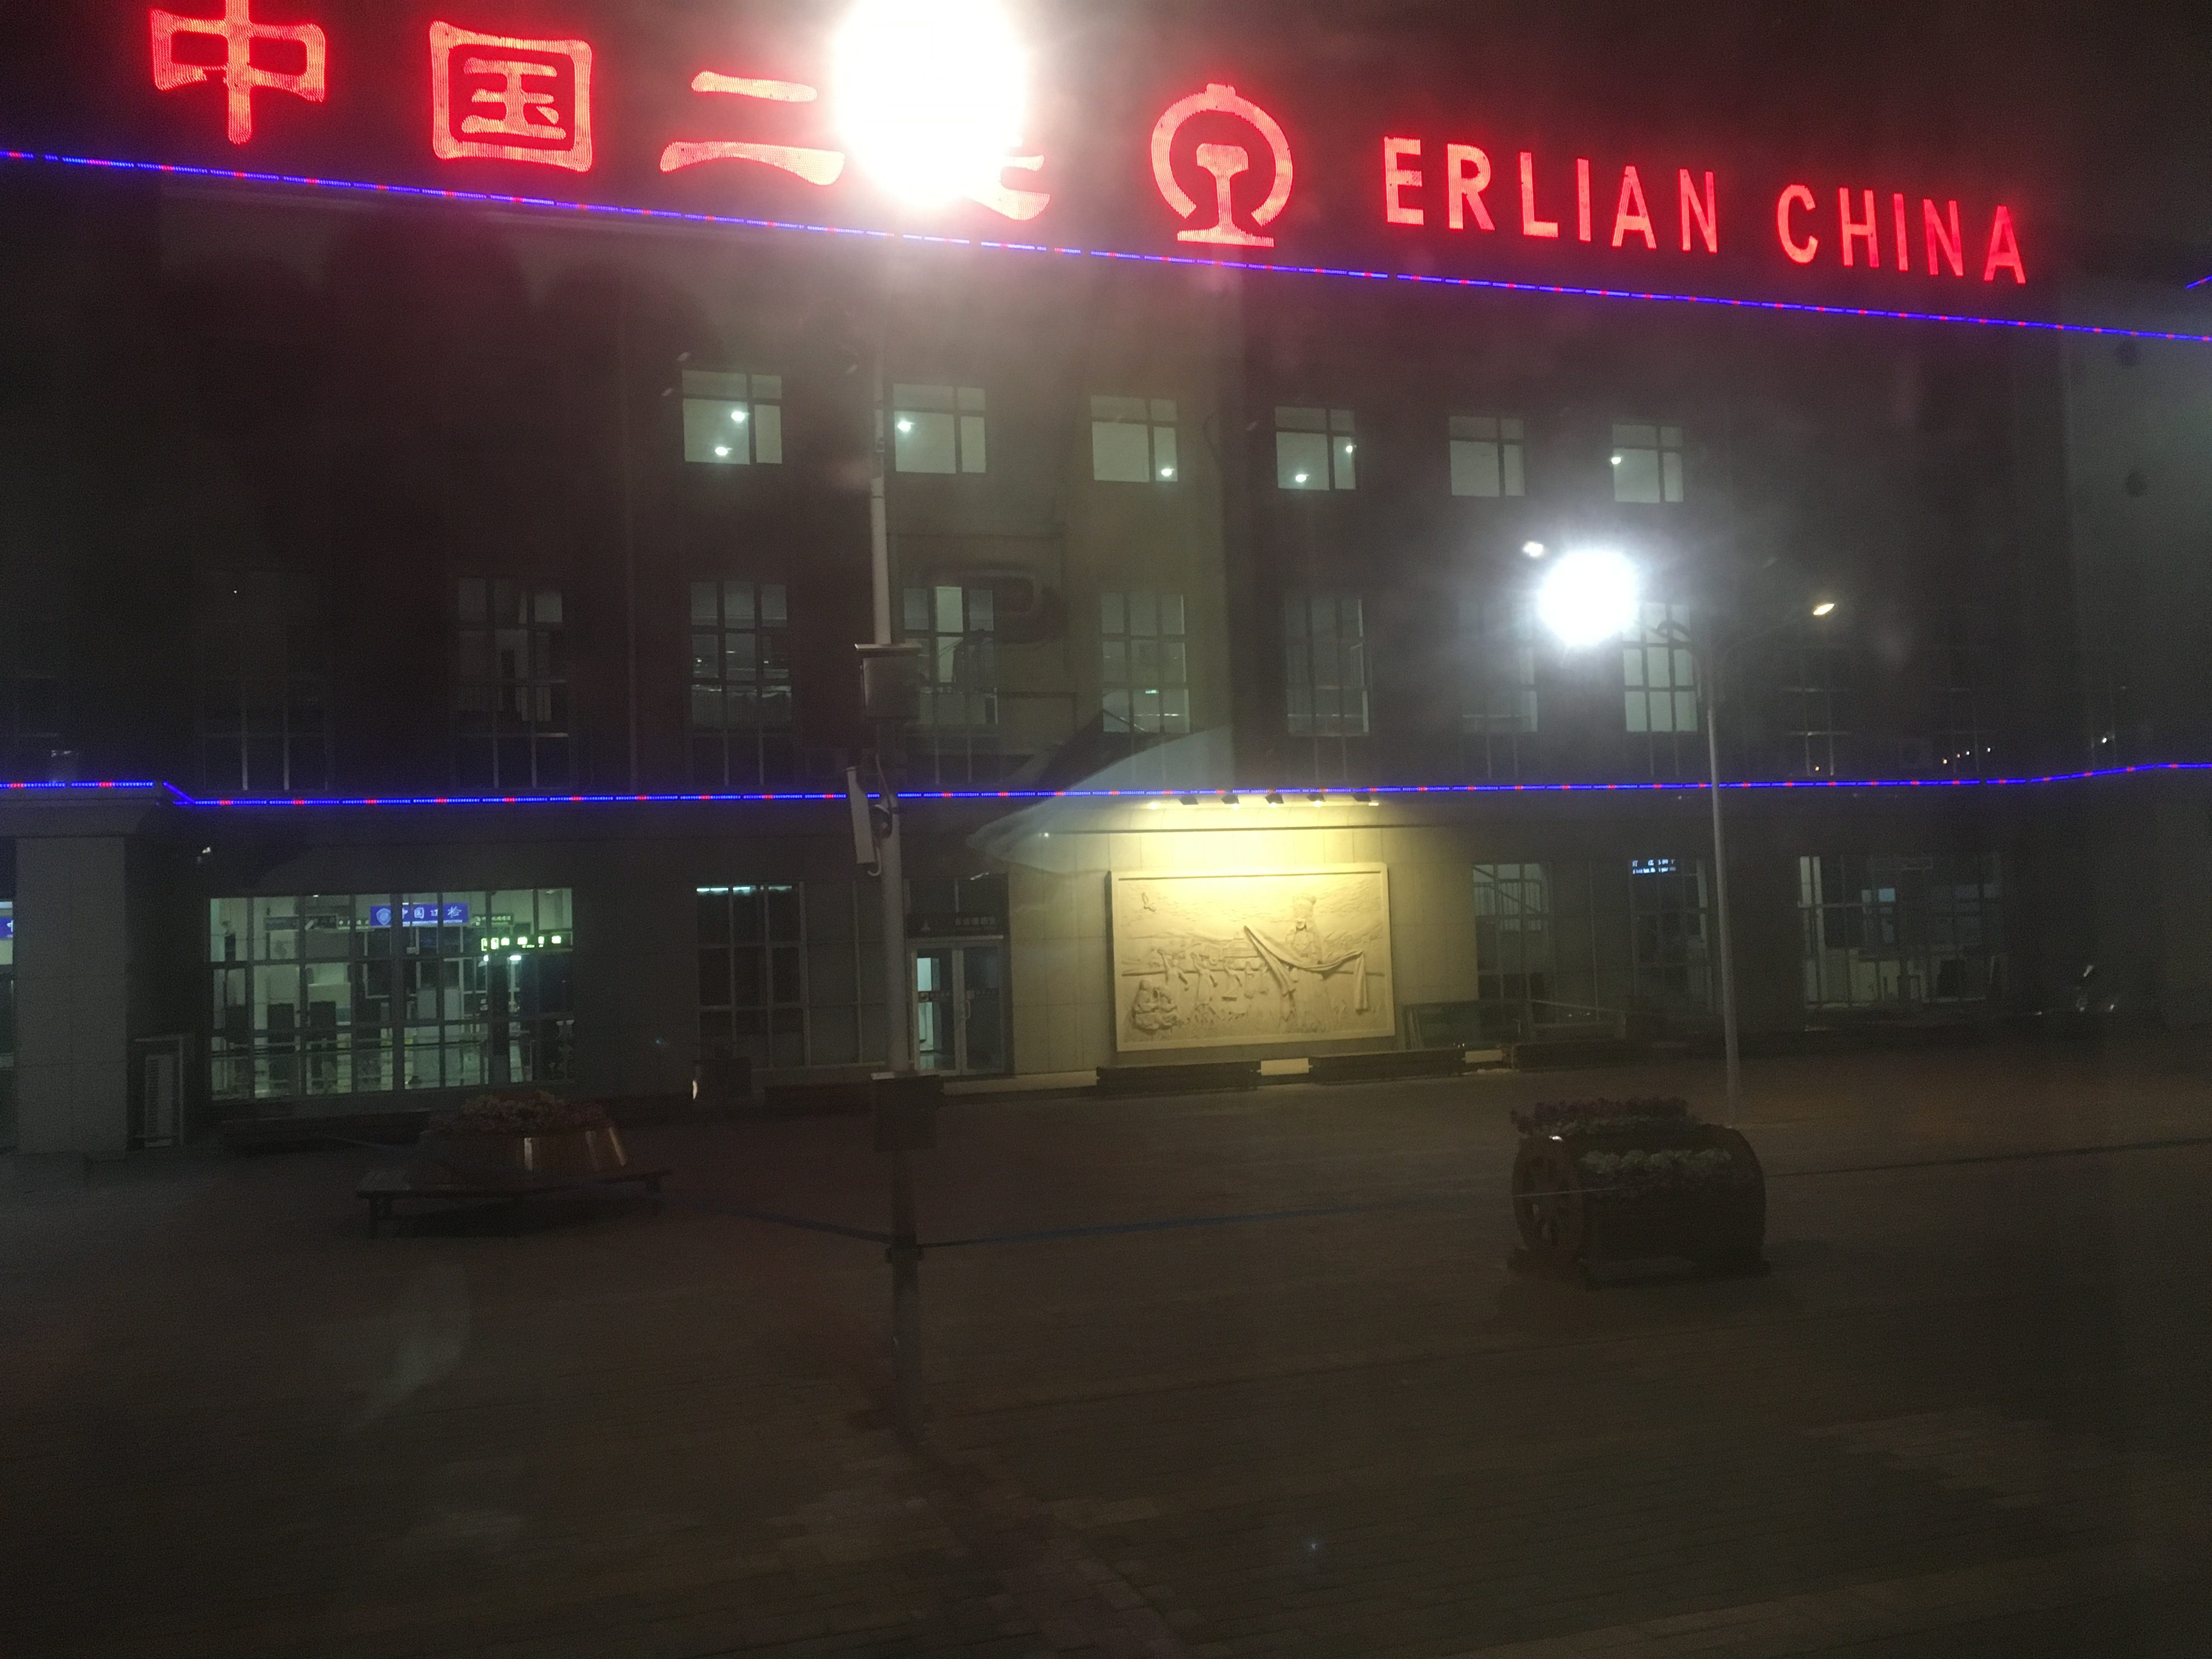 Erlian Station, entry point to China and a five hour wait